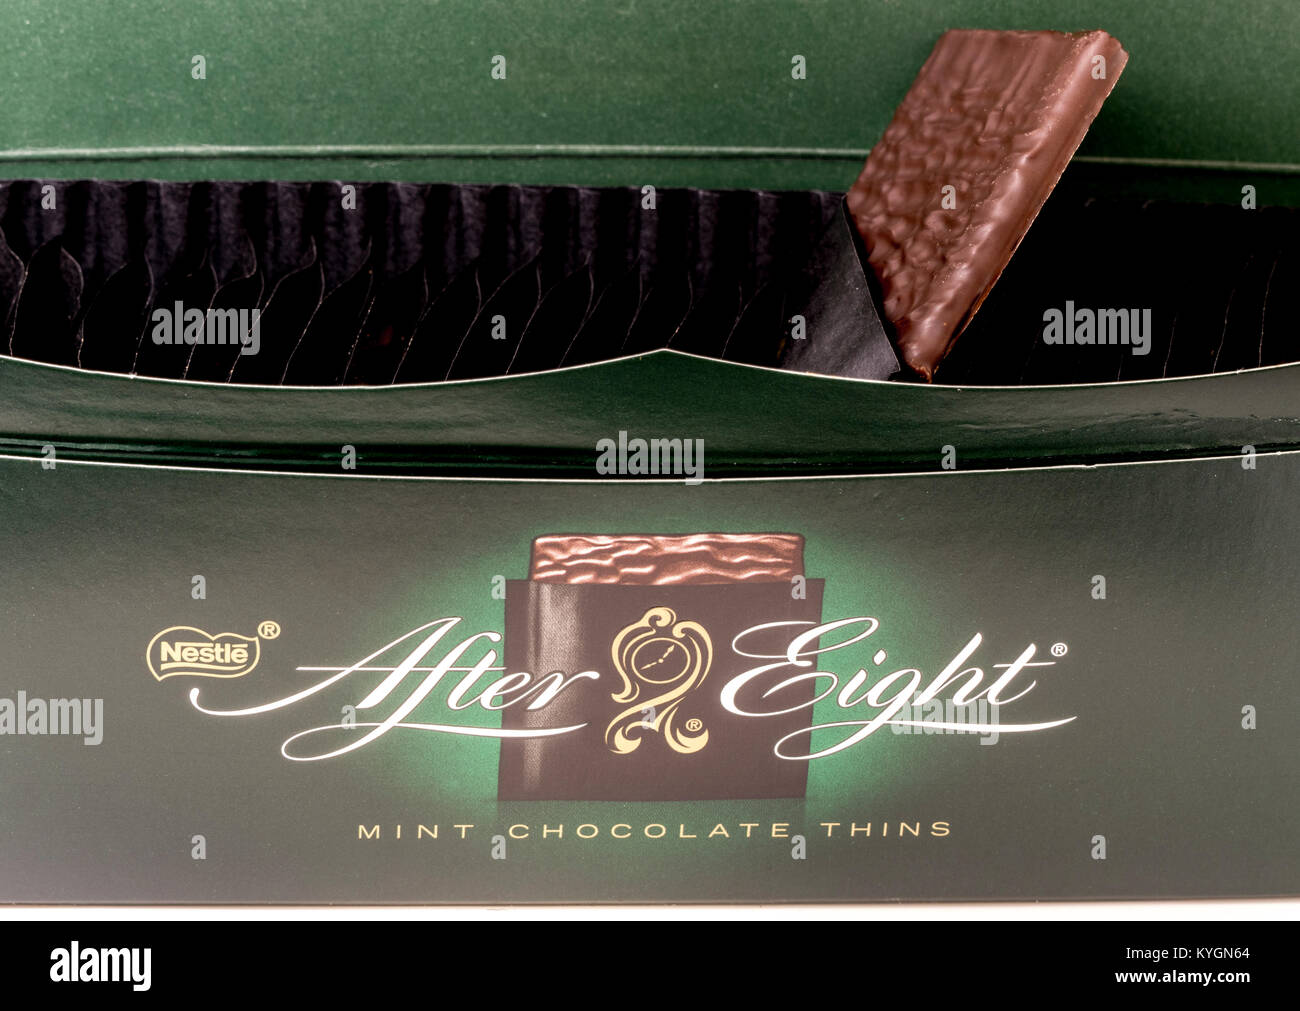 Nestlé After Eight chocolates (After Eights). Closeup of open box and logo, with a square shaped dark chocolate - Stock Image